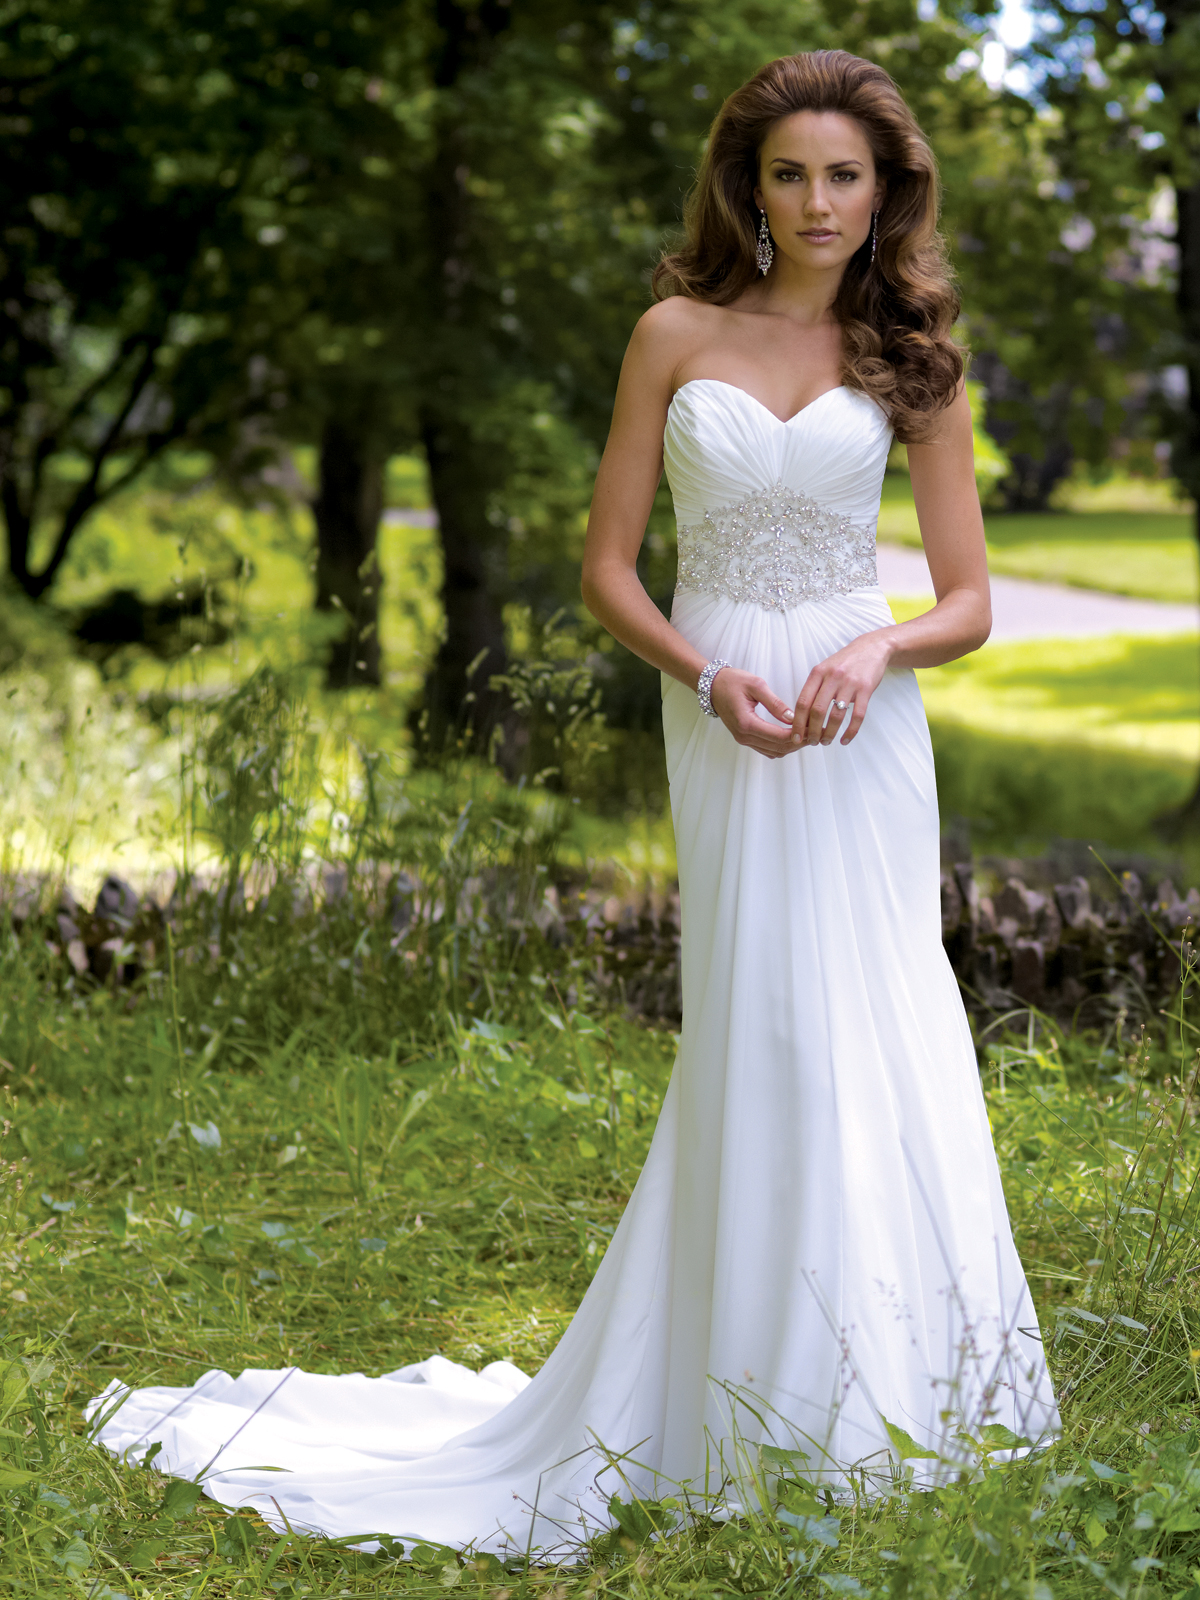 casual wedding dresses dressed up girl ForWedding Dress Casual Style